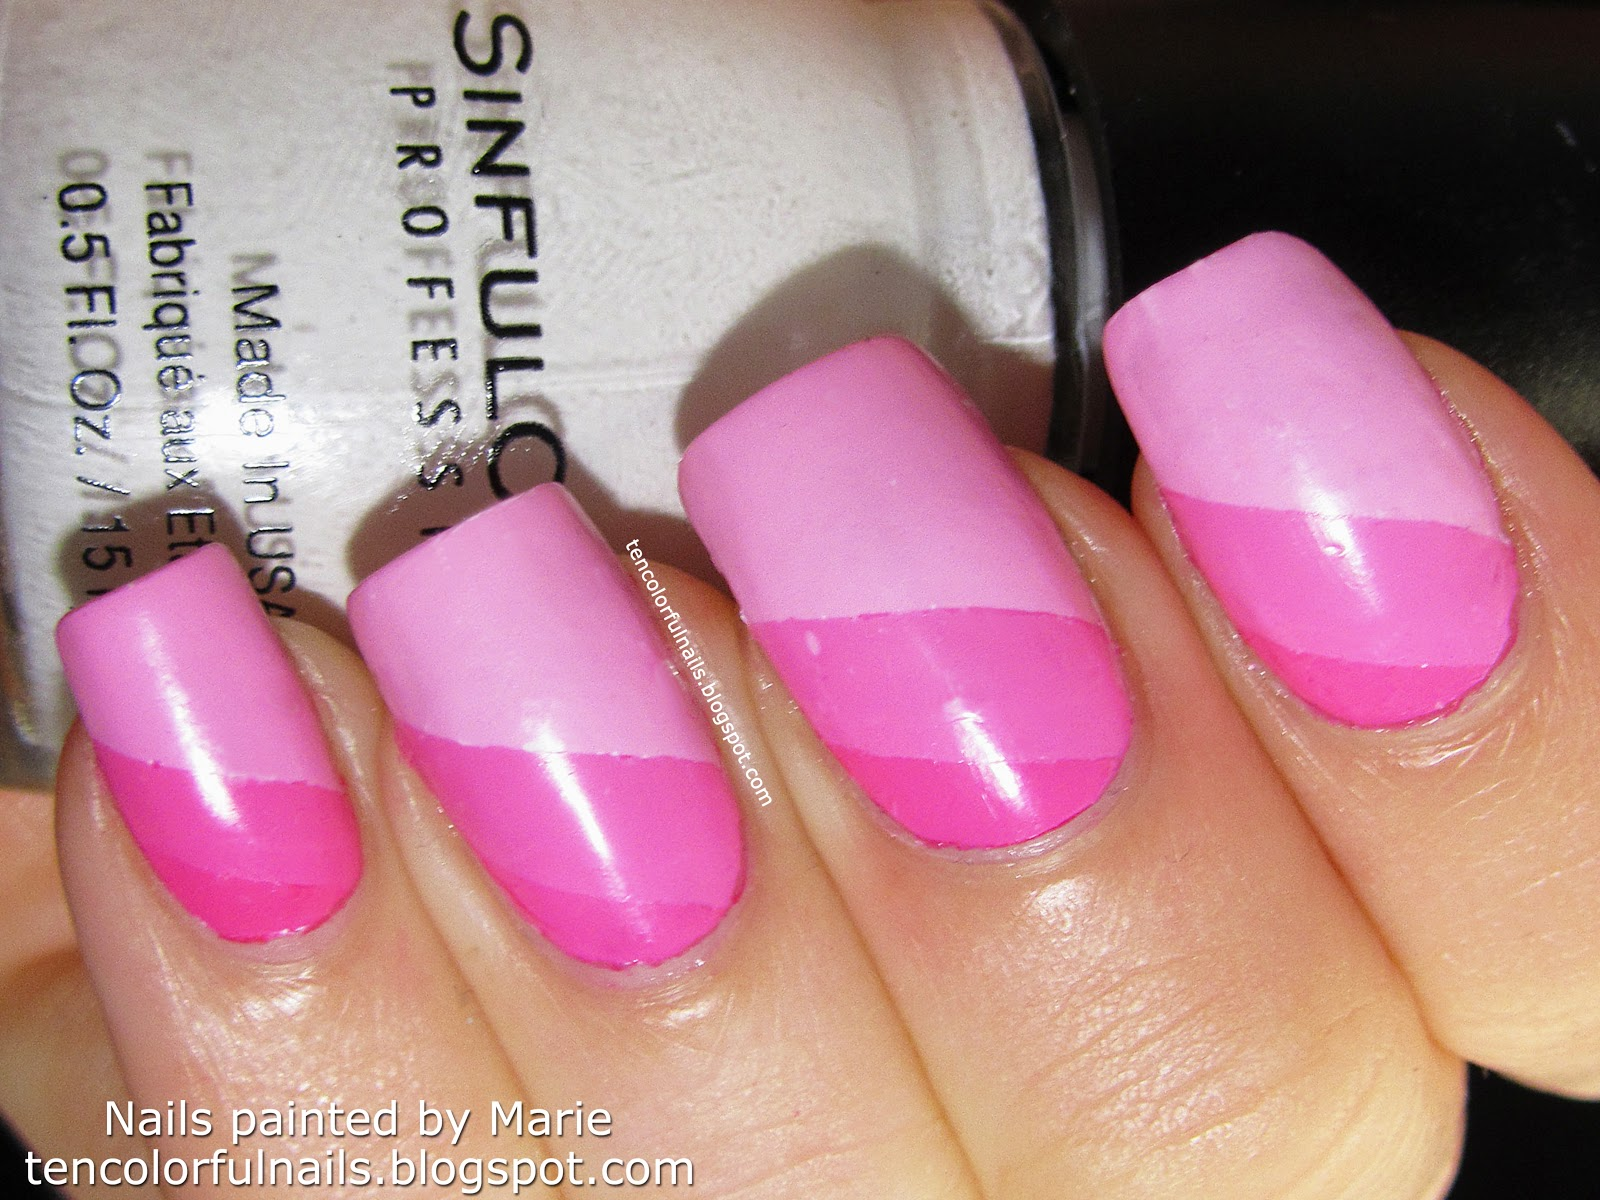 Ten Colorful Nails Water Ombre Nail Art Tutorial